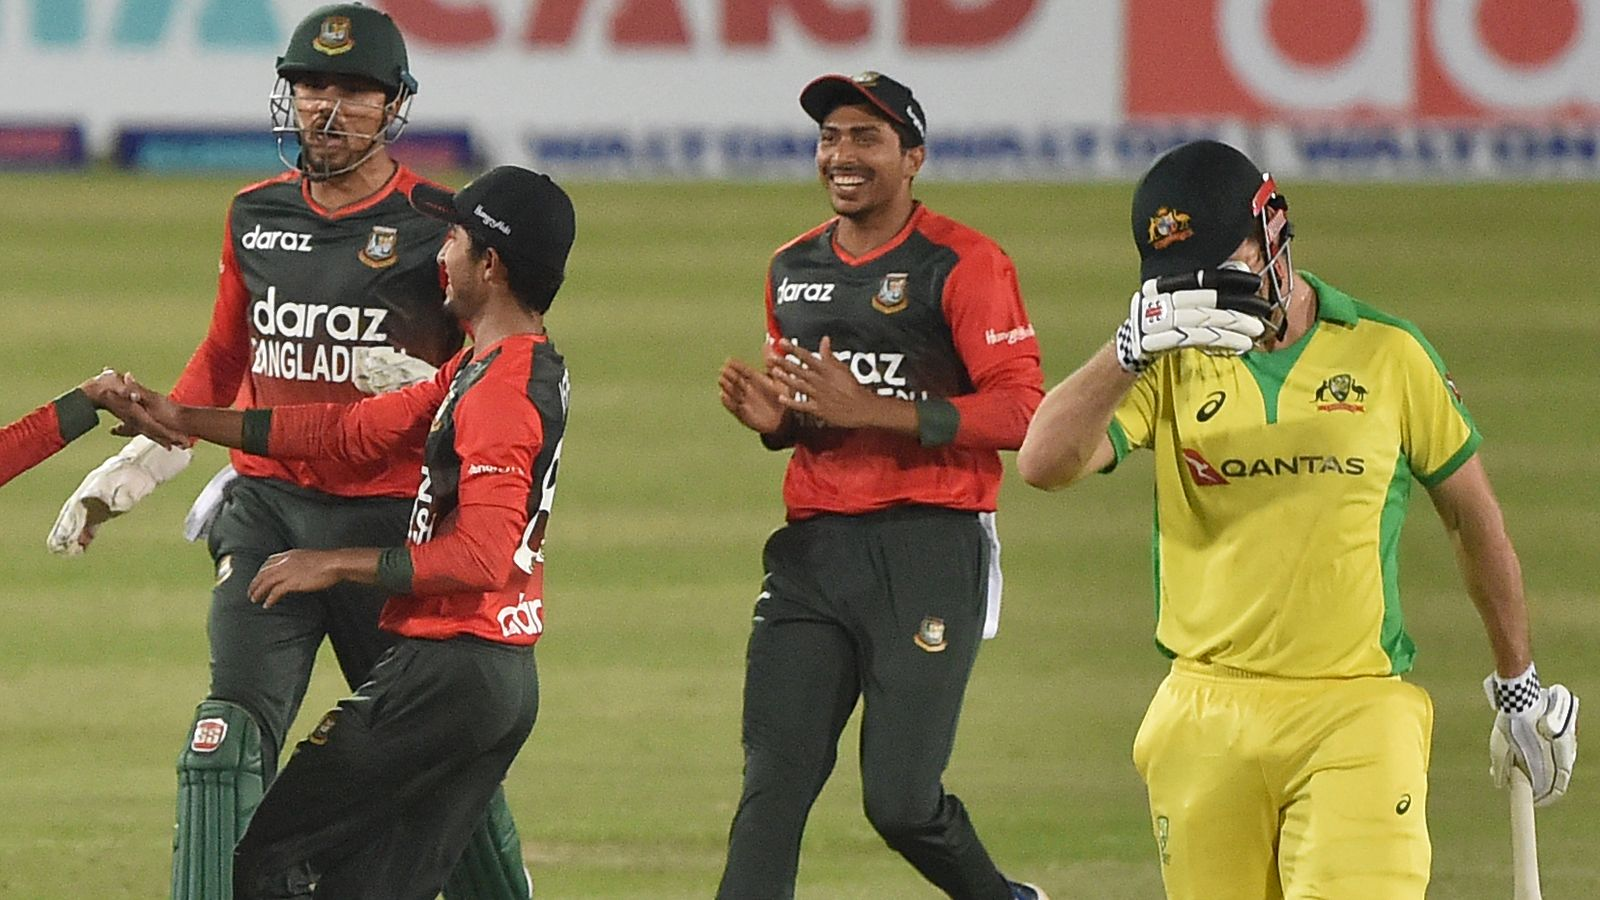 Bangladesh claim first T20 win over Australia as spinner Nasum Ahmed takes four wickets